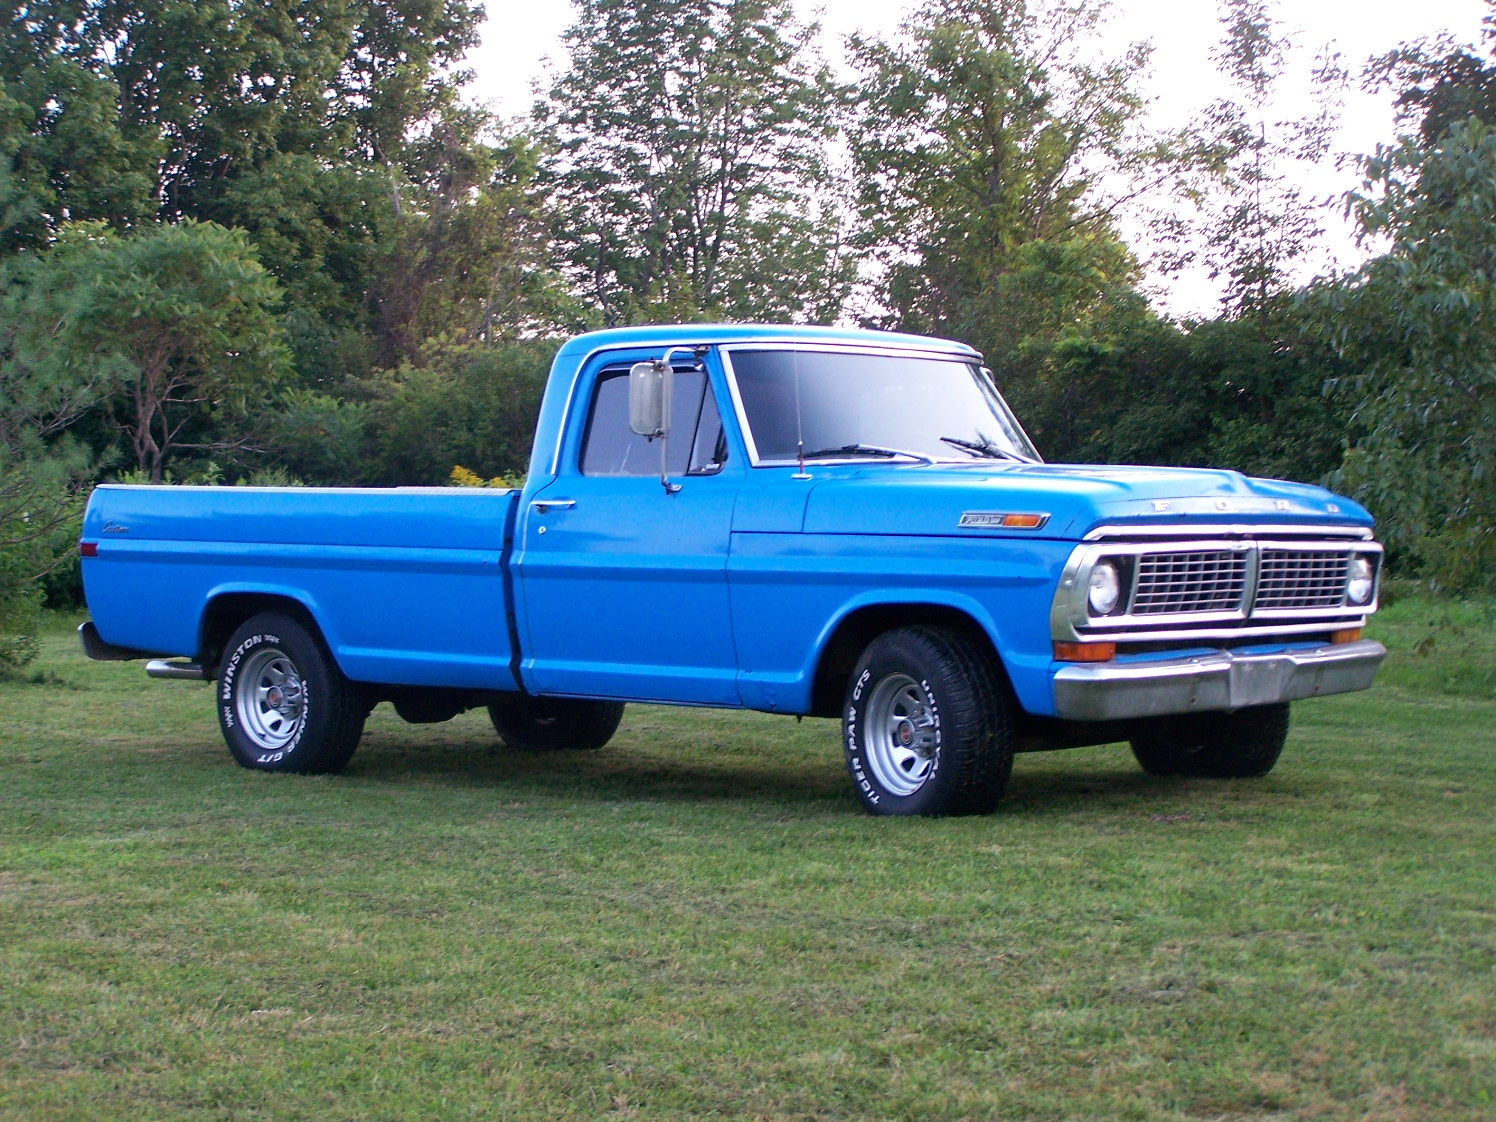 Ford F-100 1976 photo - 5